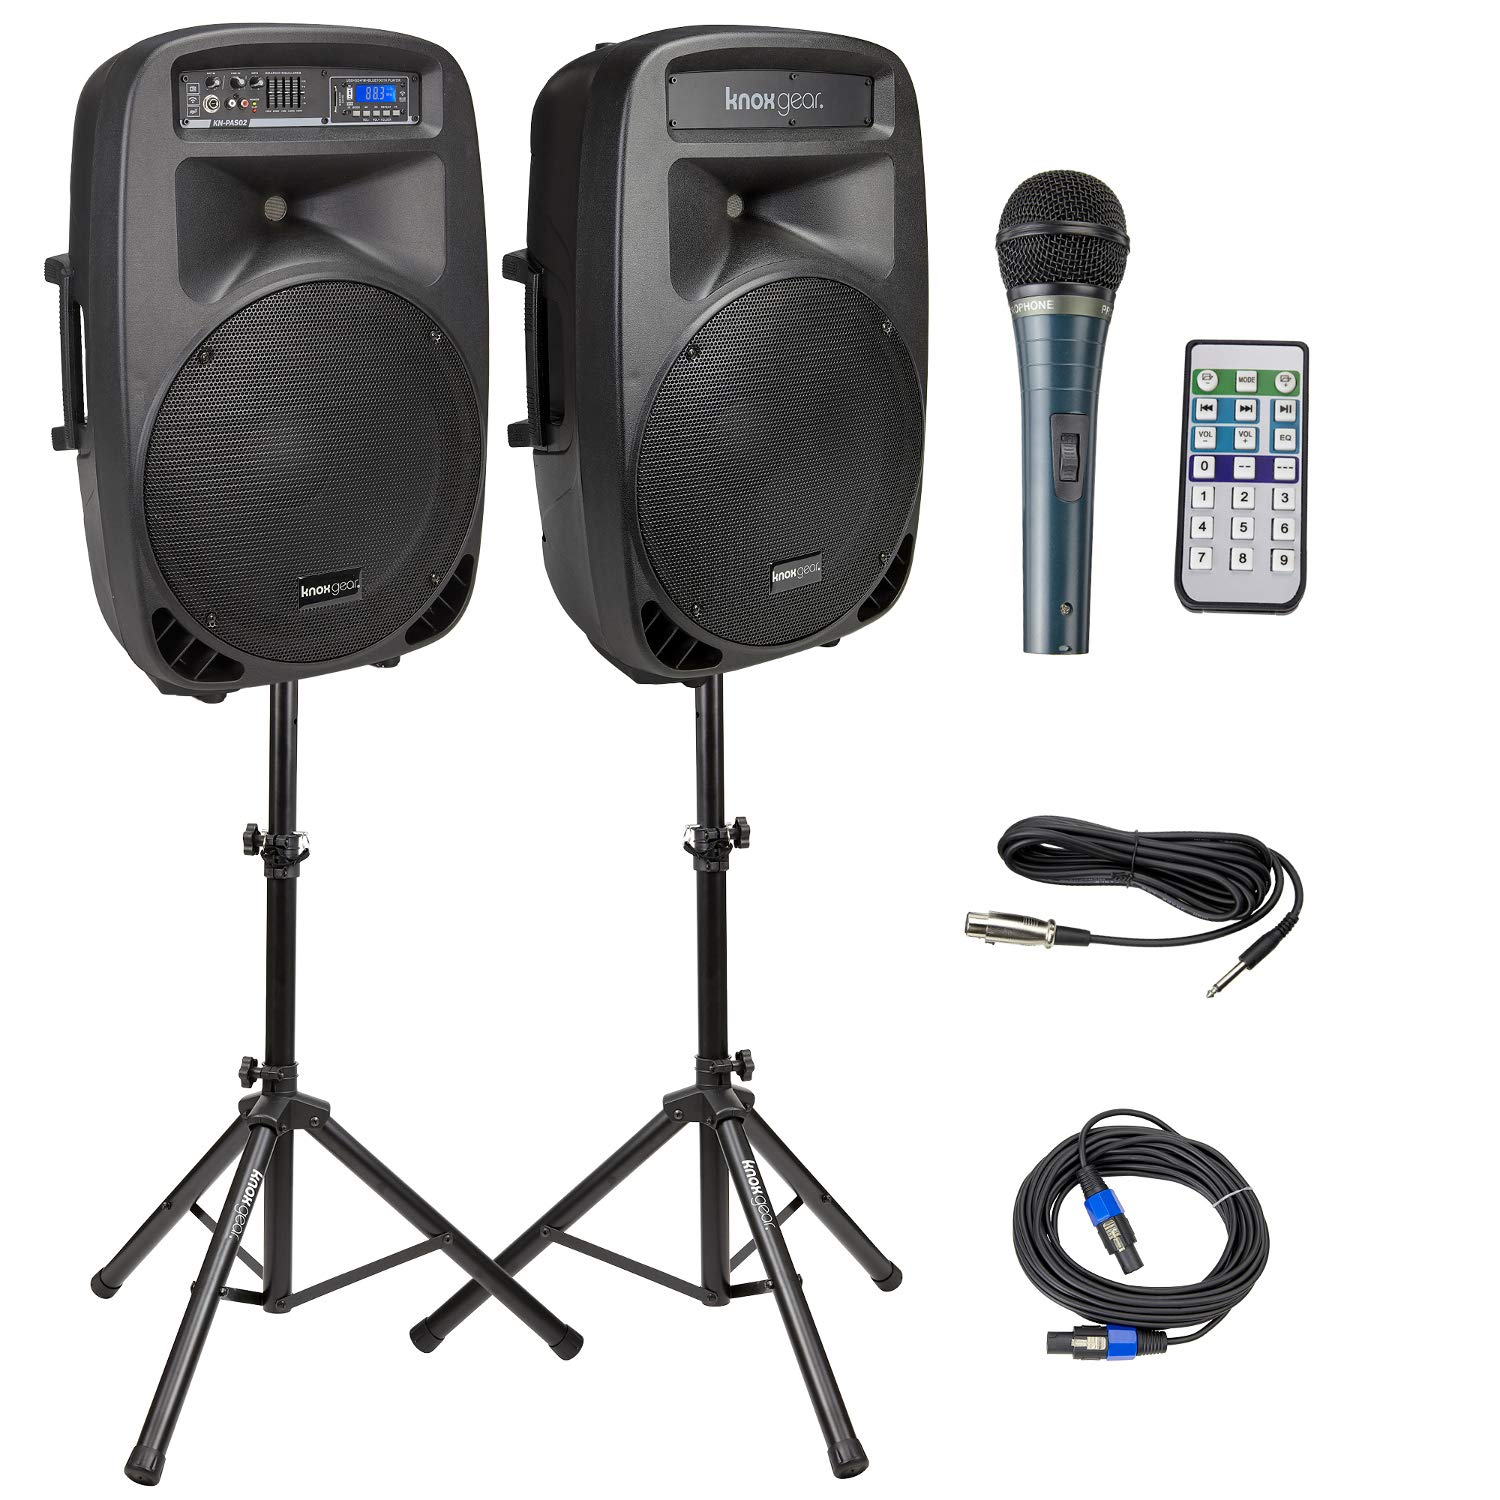 Knox Dual 15'' Speakers, 600 Watt - 8 Piece Portable PA System - Microphone, Tripods, Remote Control - Bluetooth, USB, SD Card, RCA and 1/4'' Inputs - Colorful LED Lights